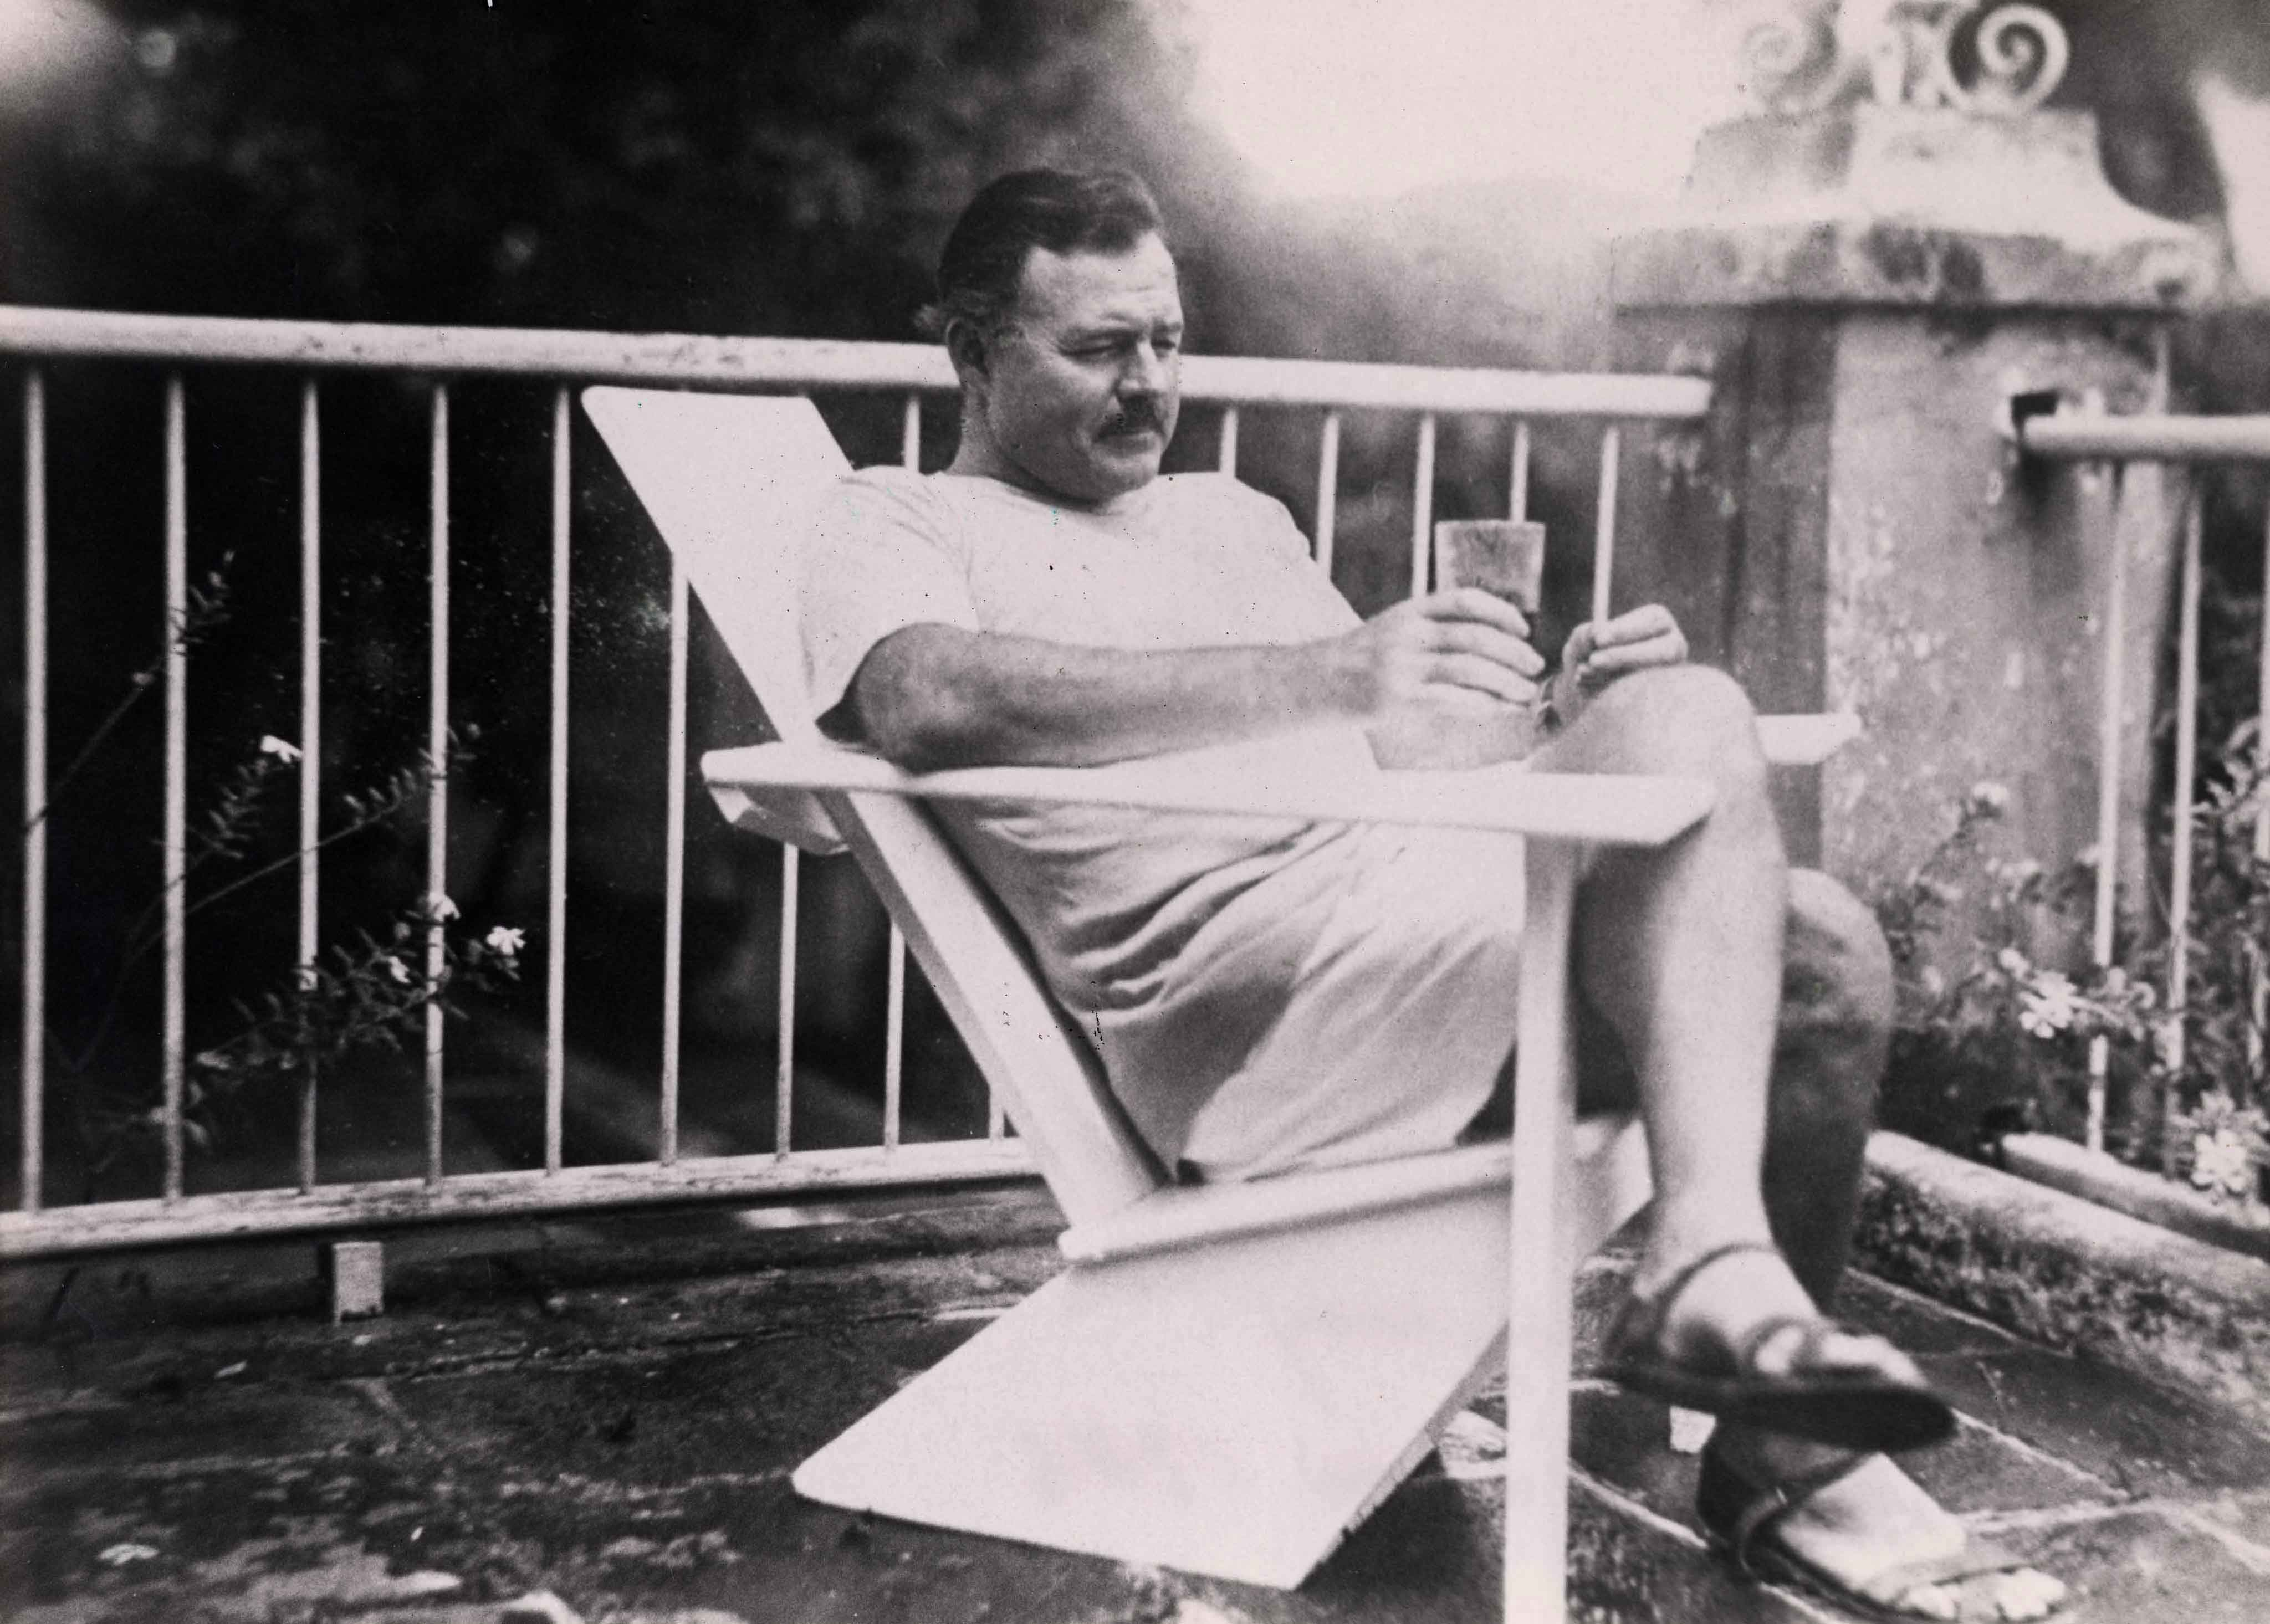 Ernest hemingway 39 s guide to tense haunting hangovers for Cocktail hemingway